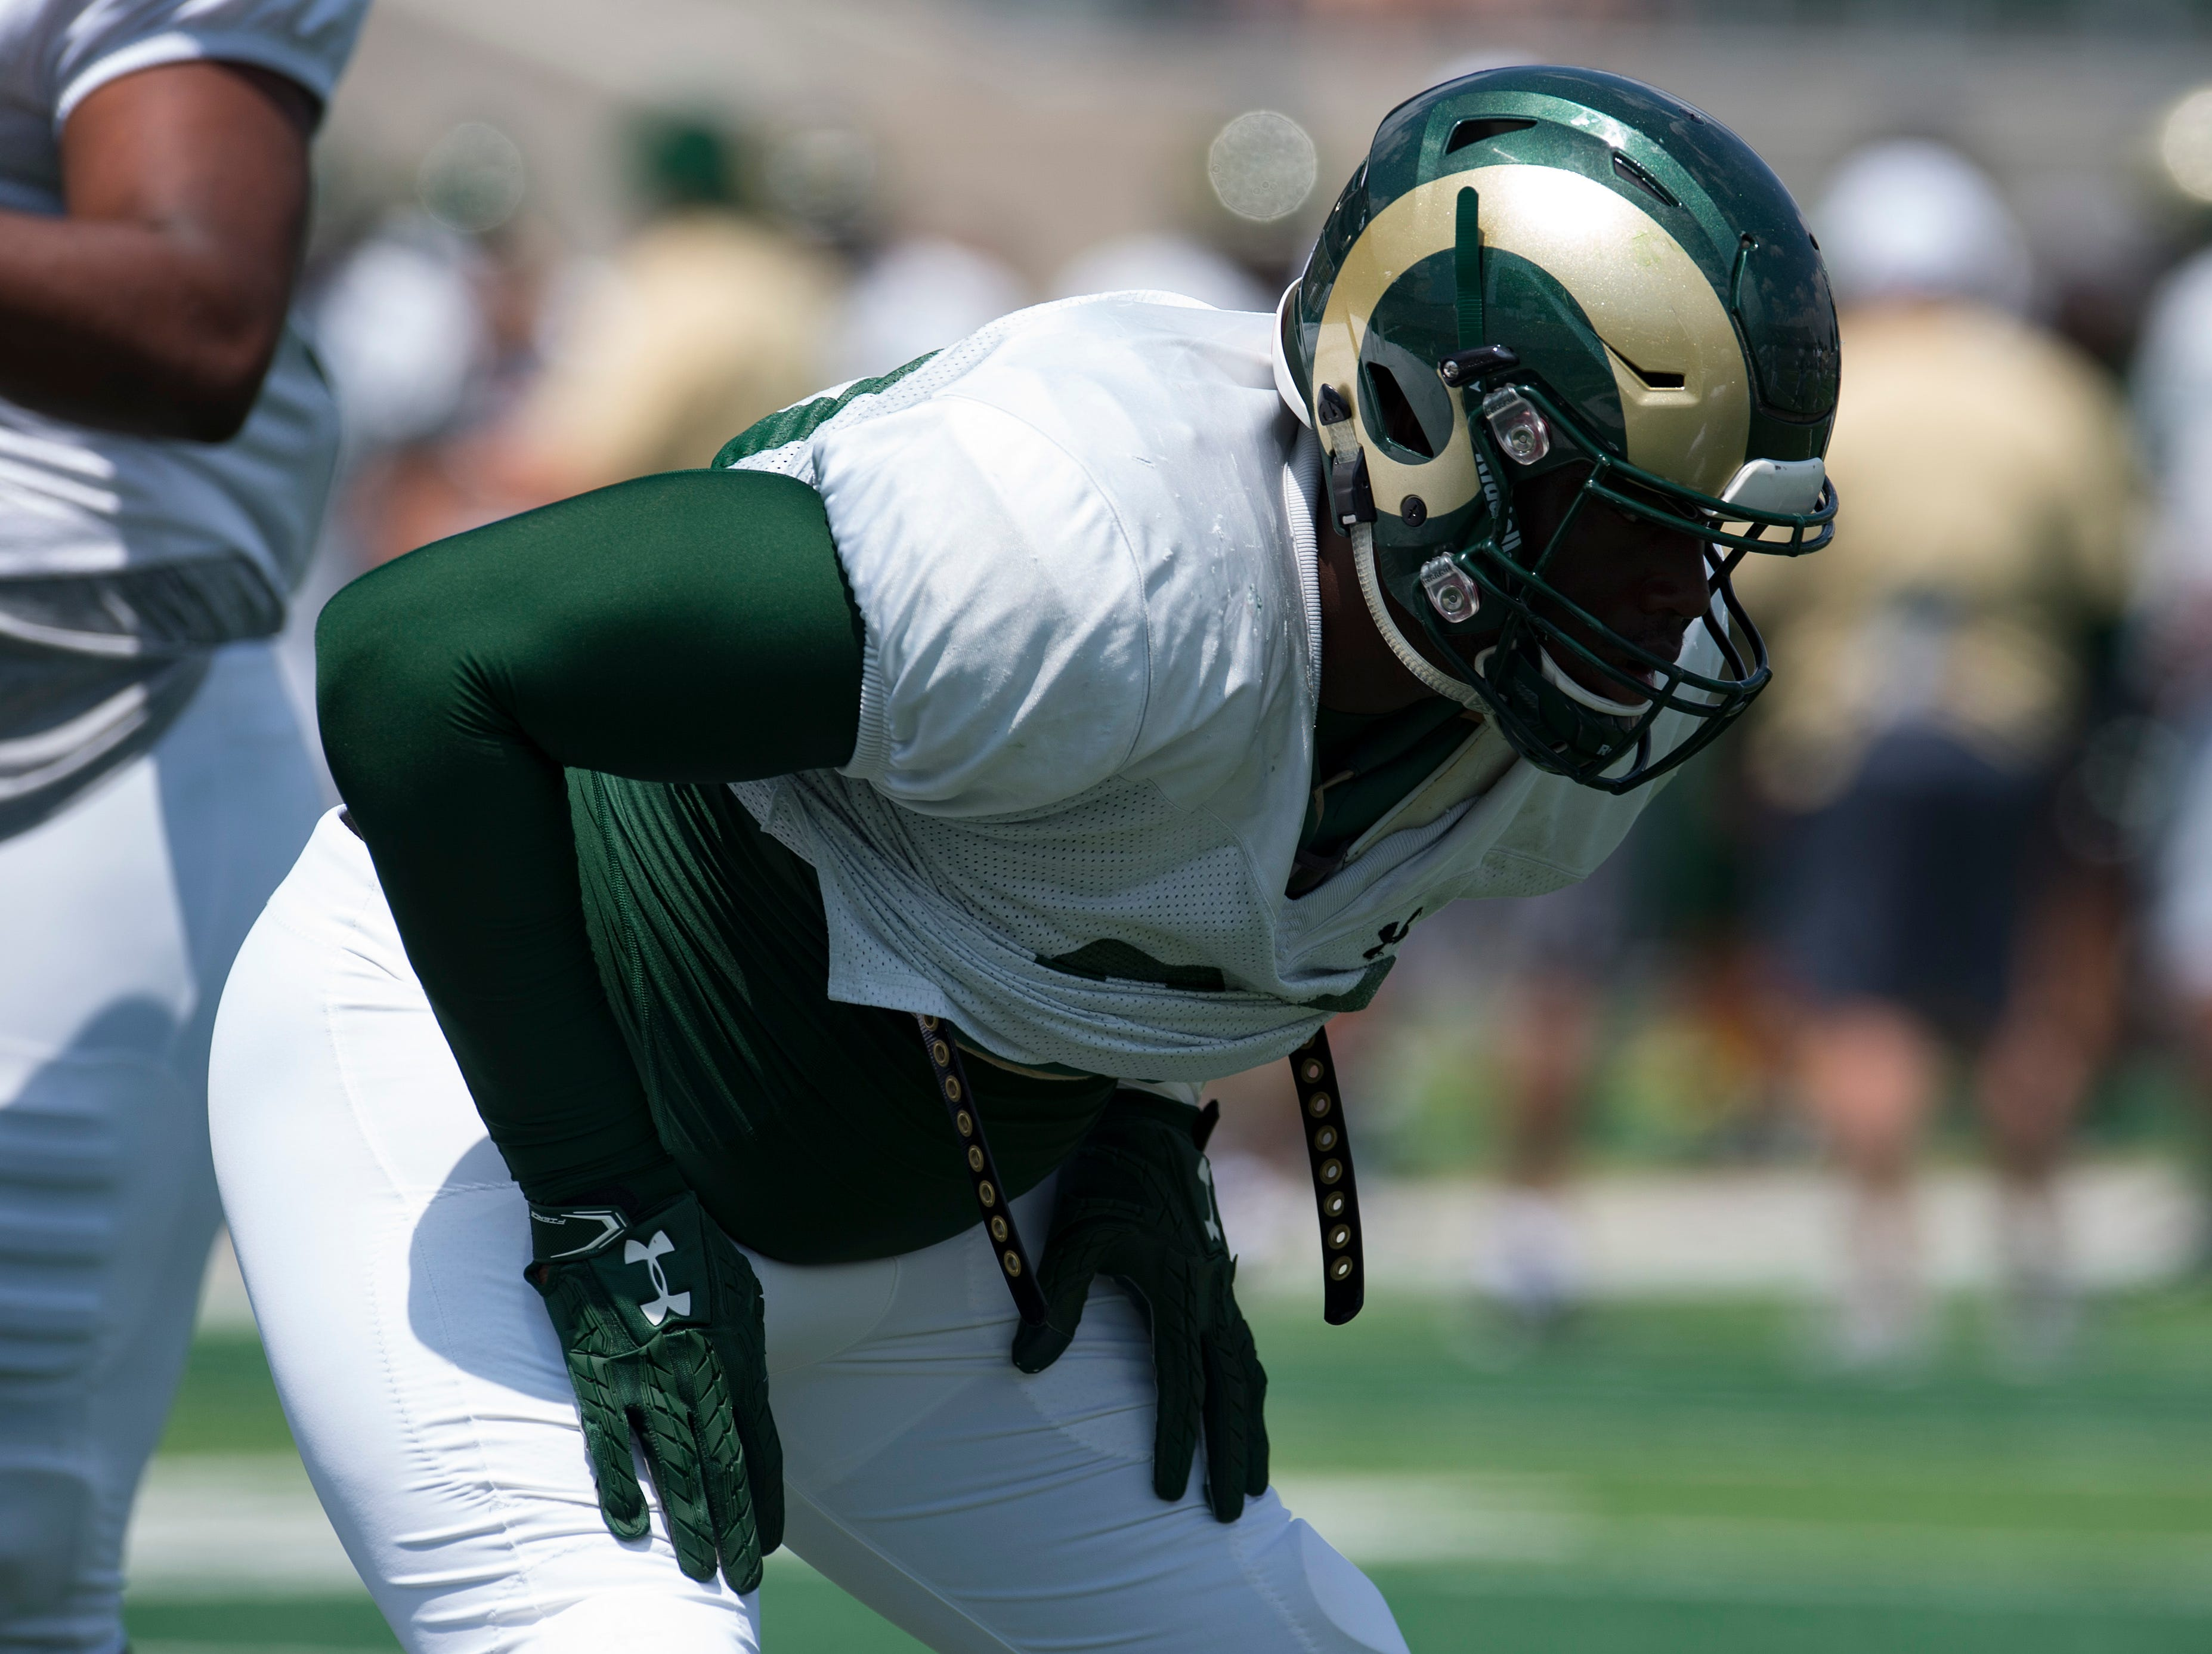 CSU defensive end Damion Dickens warms up for a scrimmage during an open house hosted by the Rams outside of Canvas Stadium on Saturday, August 4, 2018. Dickens is a junior transfer from Copiah-Lincoln Community College.